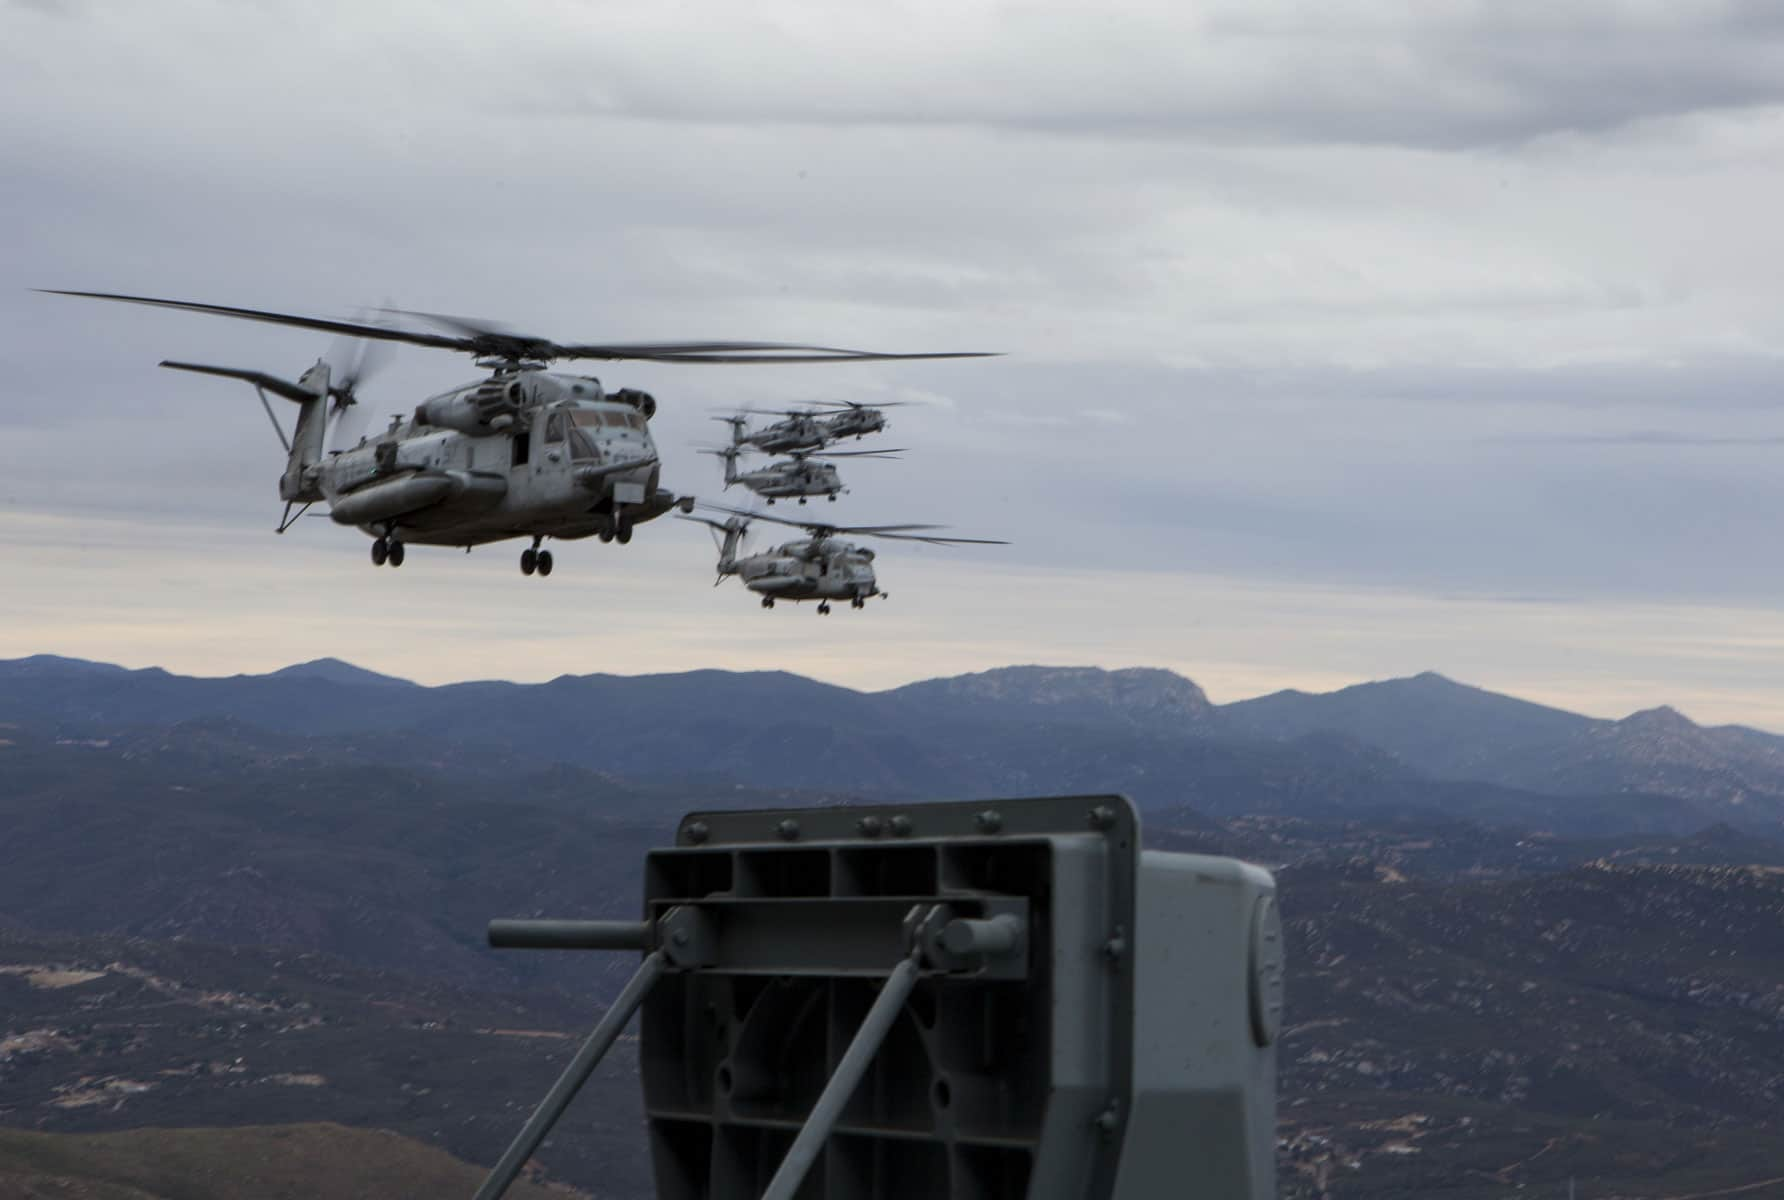 CH-53E Super Stallions with Marine Heavy Helicopter Squadron (HMH) 361 fly over San Diego, after launching from Marine Corps Air Station Miramar, California.